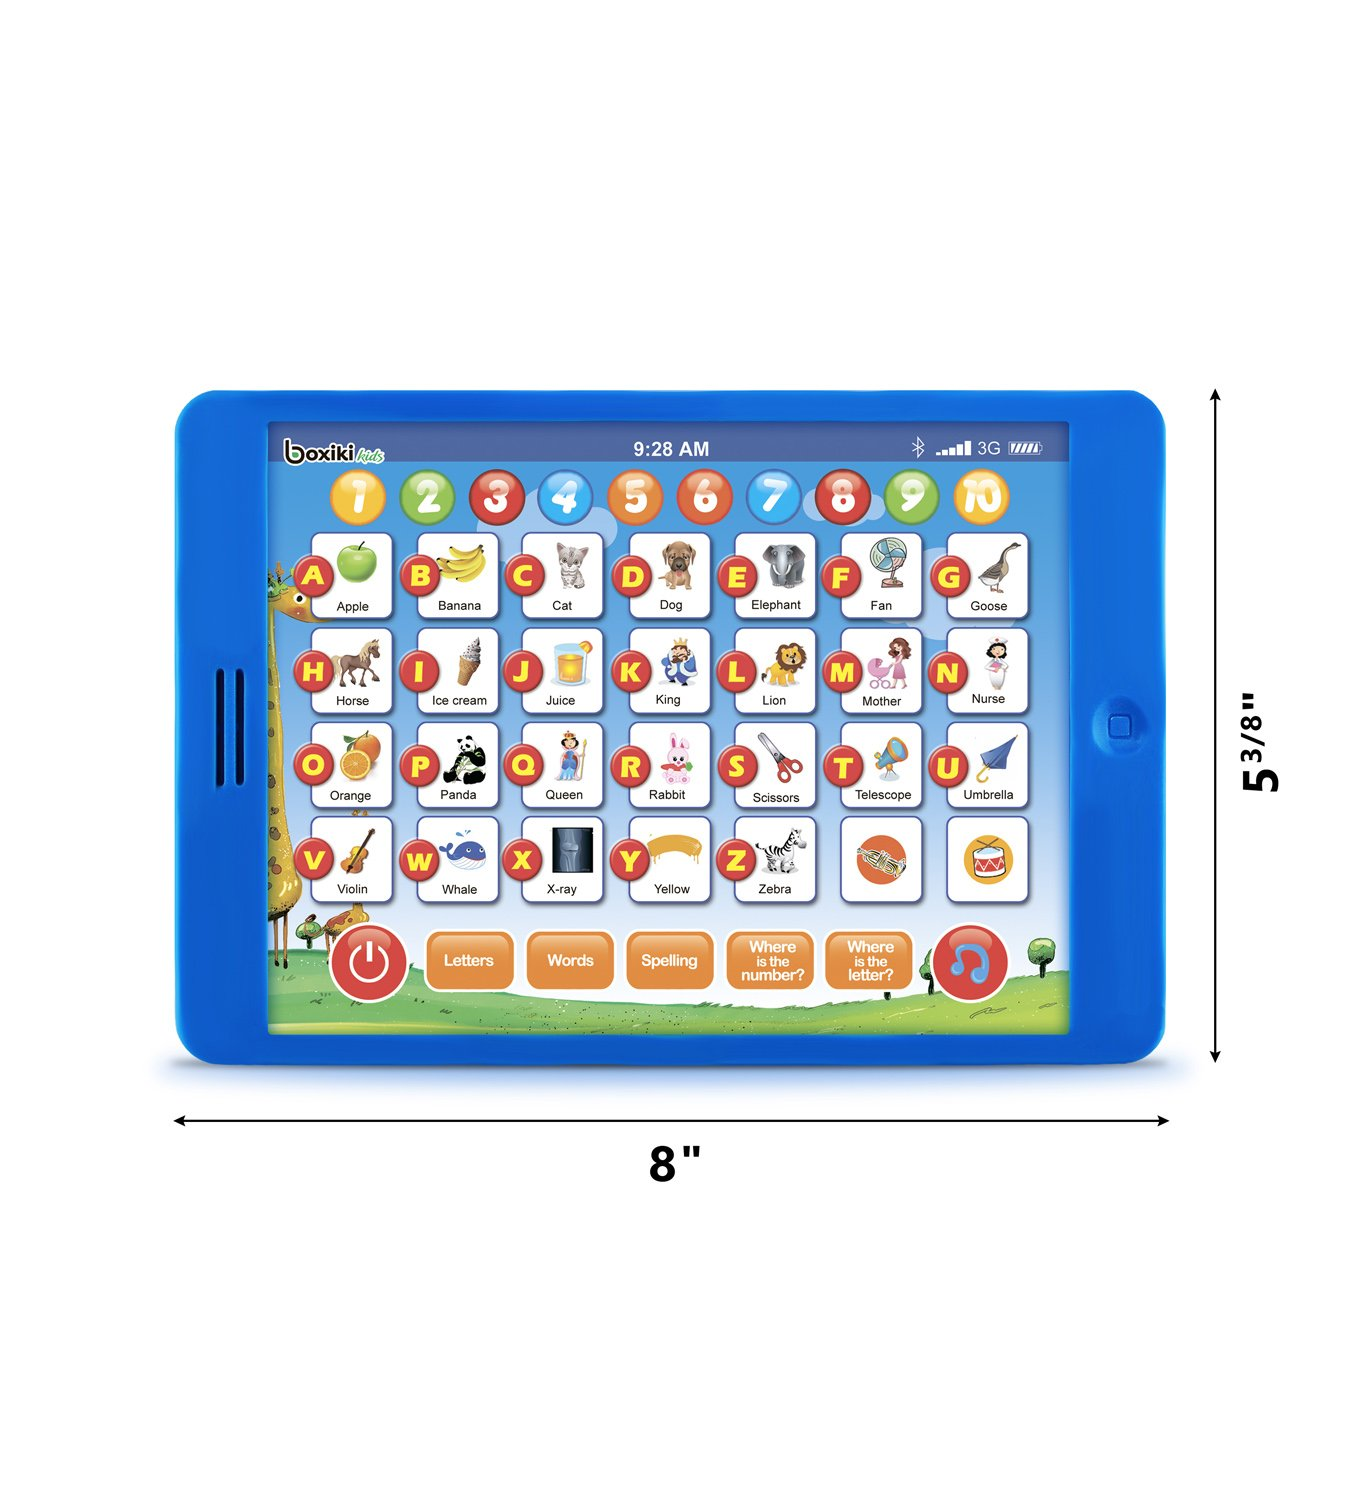 spelling fun melodies abc games boxiki kids spanish english tablet bilingual educational toy with lcd screen display by touch and teach pad for kids learning spanish and english where is games kids electronics kids electronics spelling fun melodies abc games boxiki